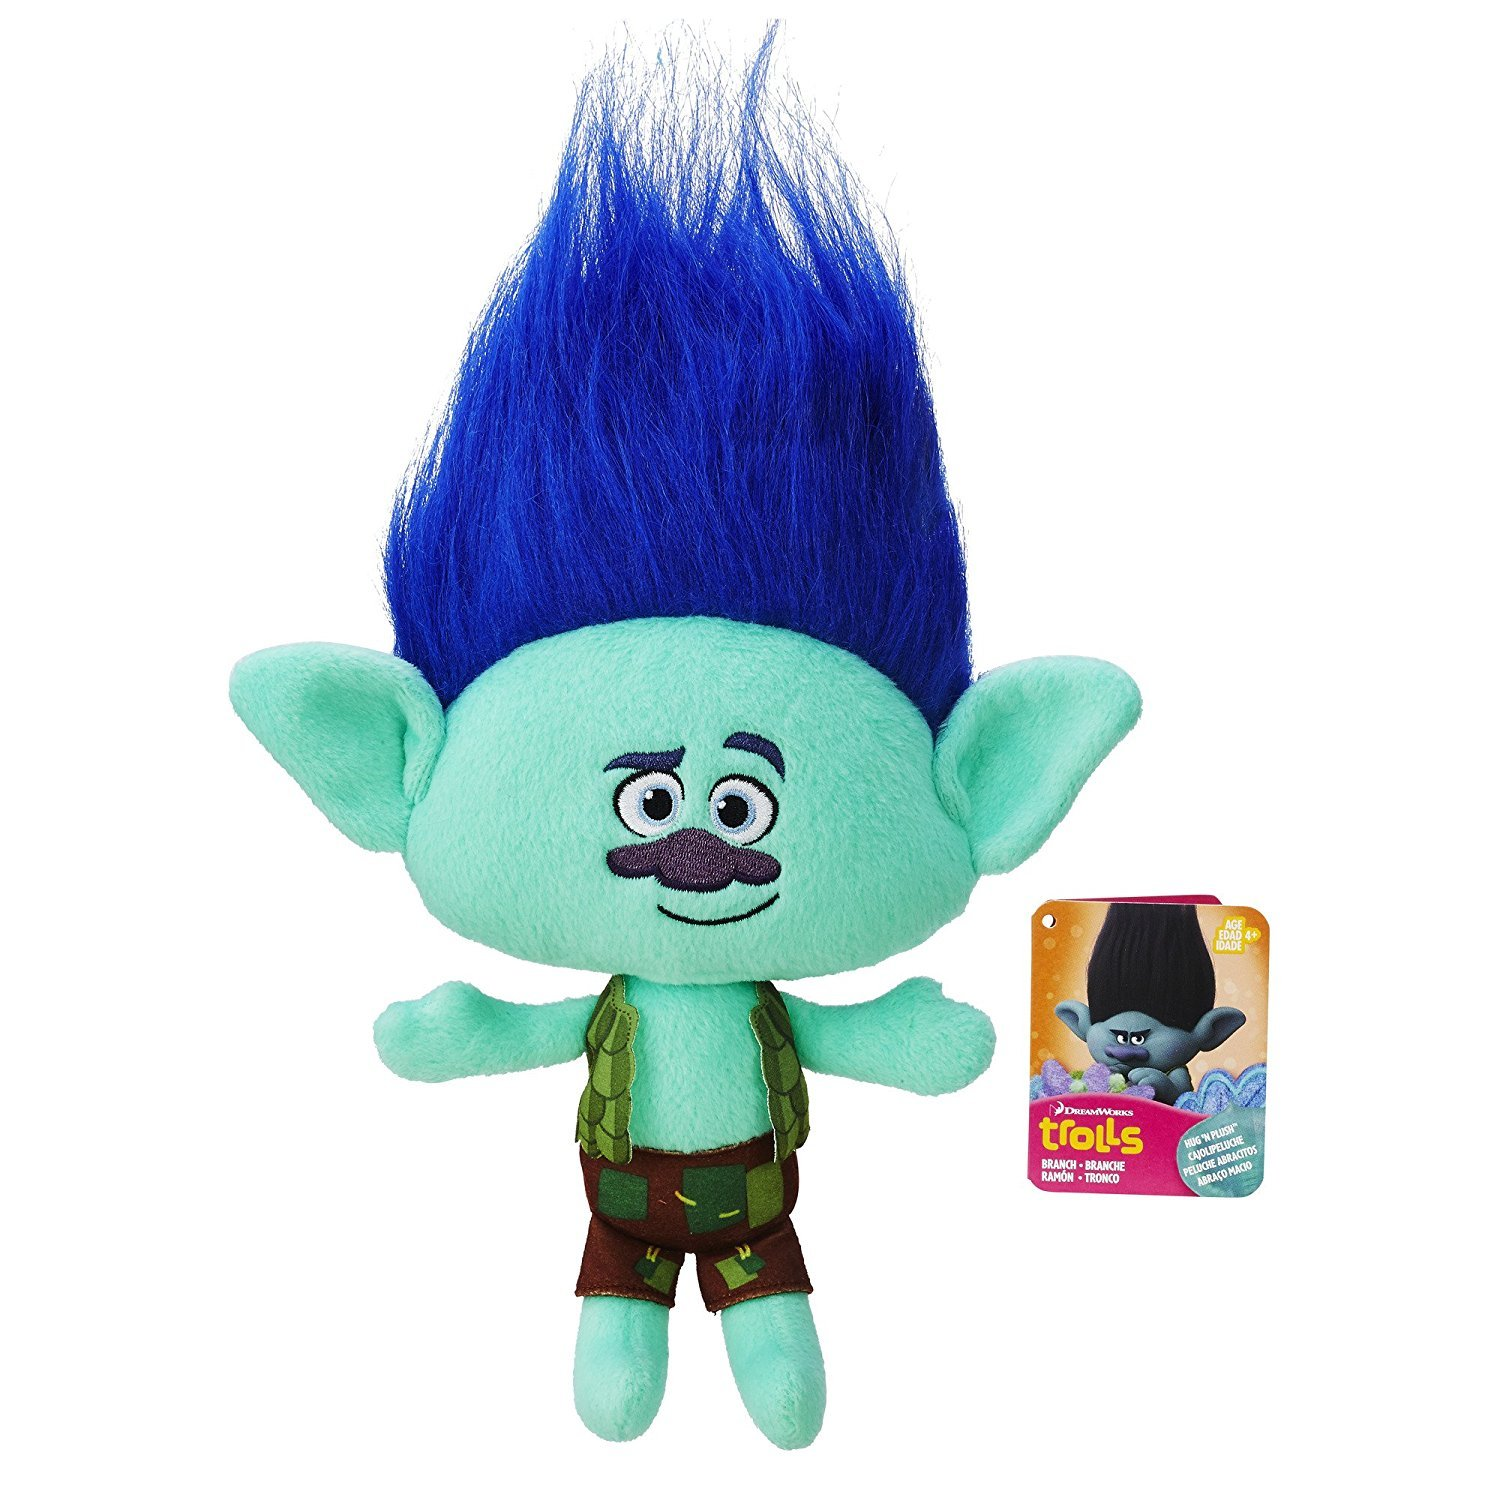 Amazon.com: Pack of 4 (Harper,Branch,Cooper, Guy Diamond) Trolls | DreamWorks Plush Toys ,Original,Official Licensed,(Harper:30cm/11.9